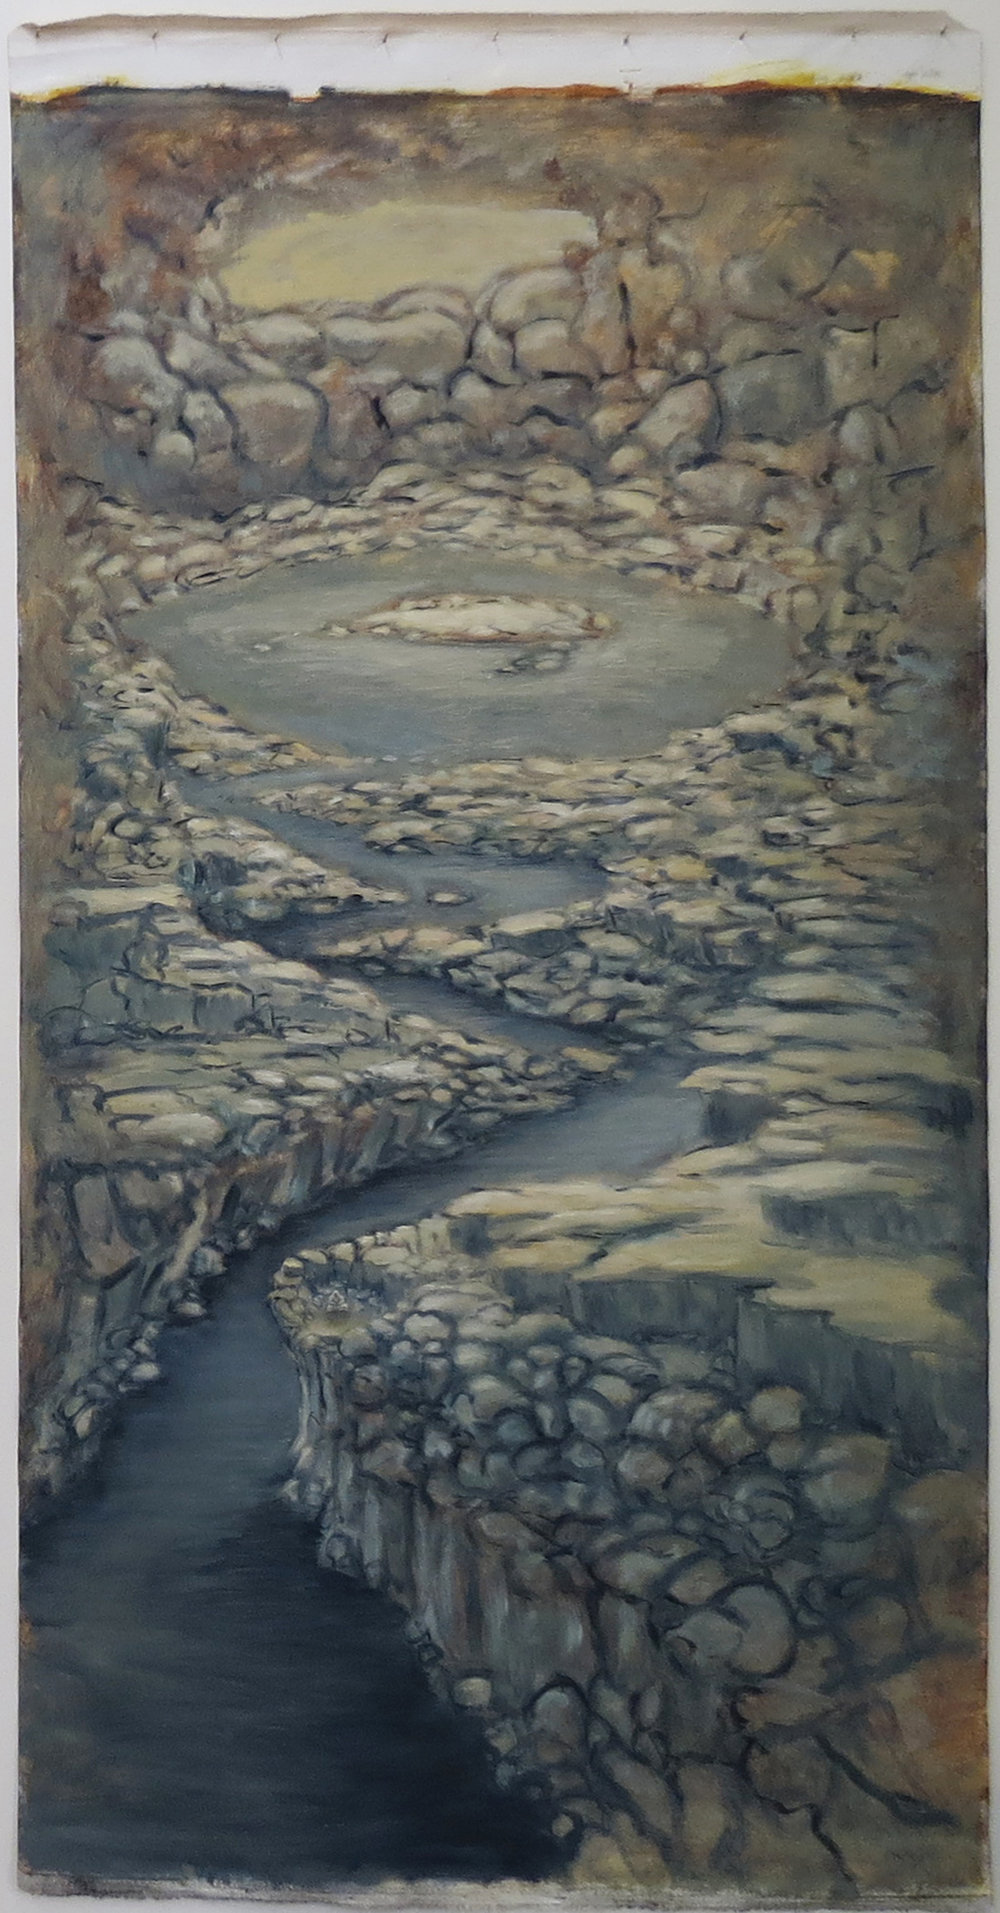 Harrison See, Valley of Stone & Water (painted in Shanghai), 2017, Oil on loose canvas, $520